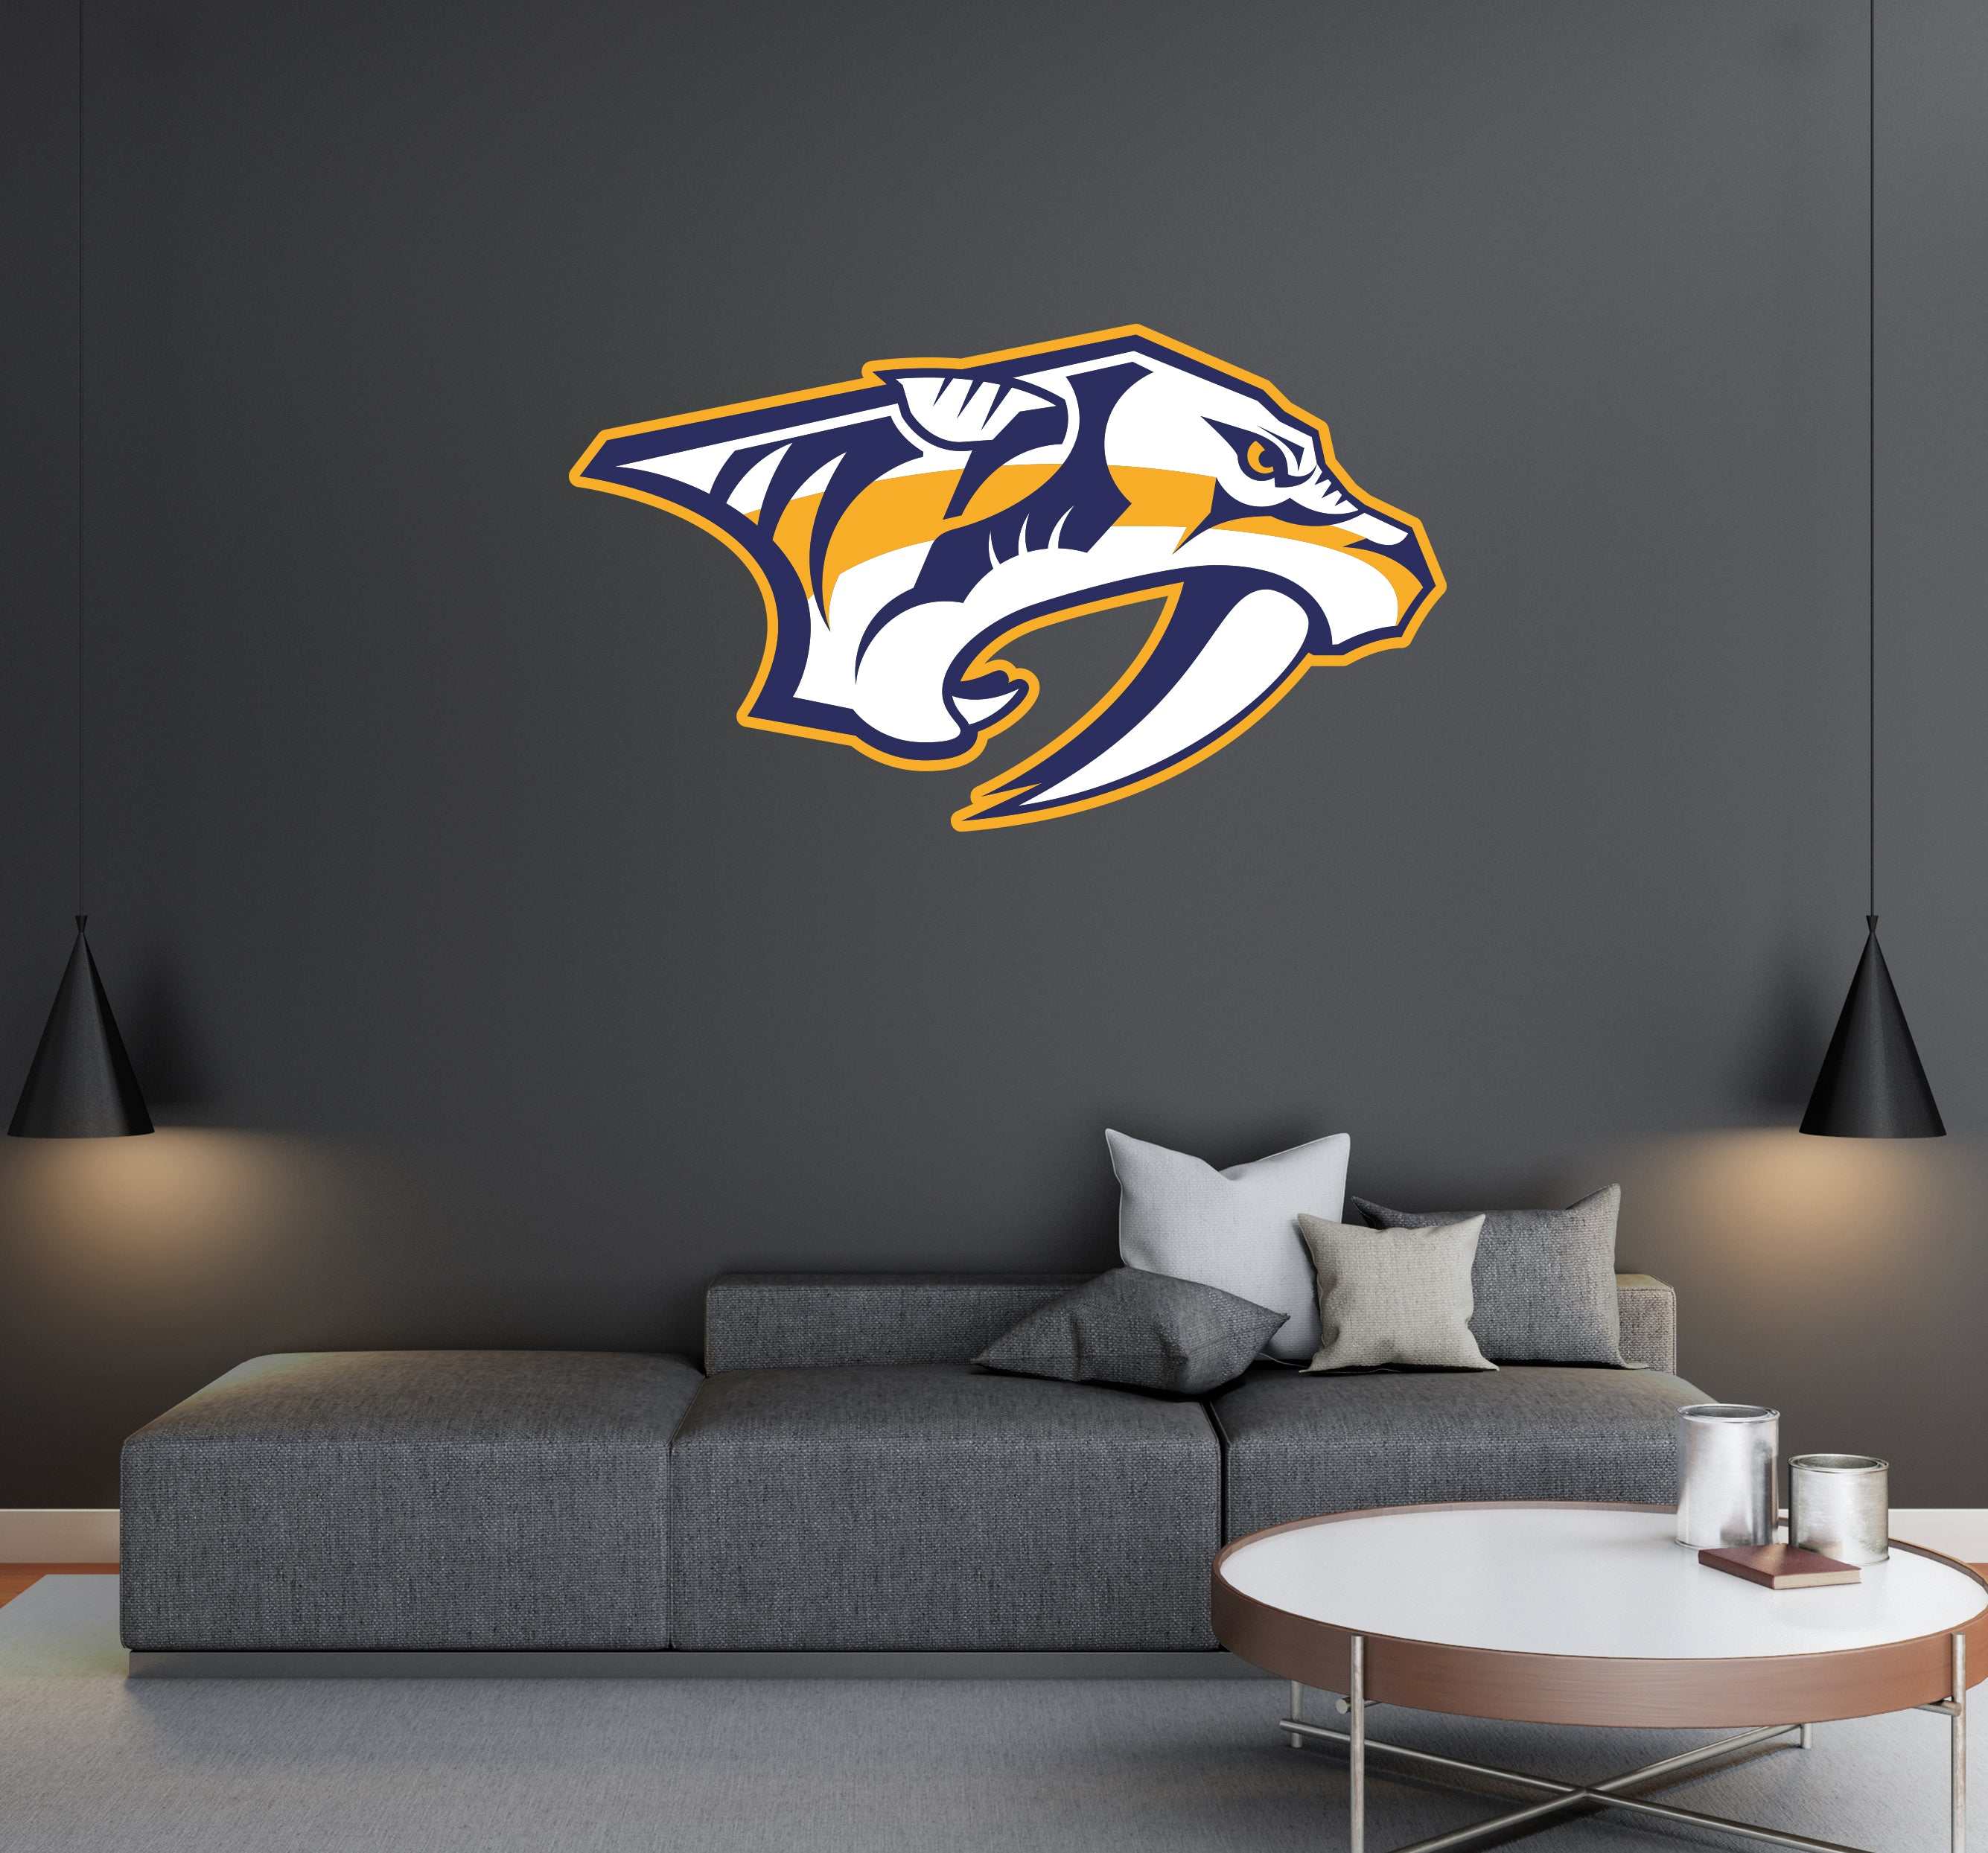 Nashville Predators - NHL Hockey Team Logo - Wall Decal Removable & Reusable For Home Bedroom